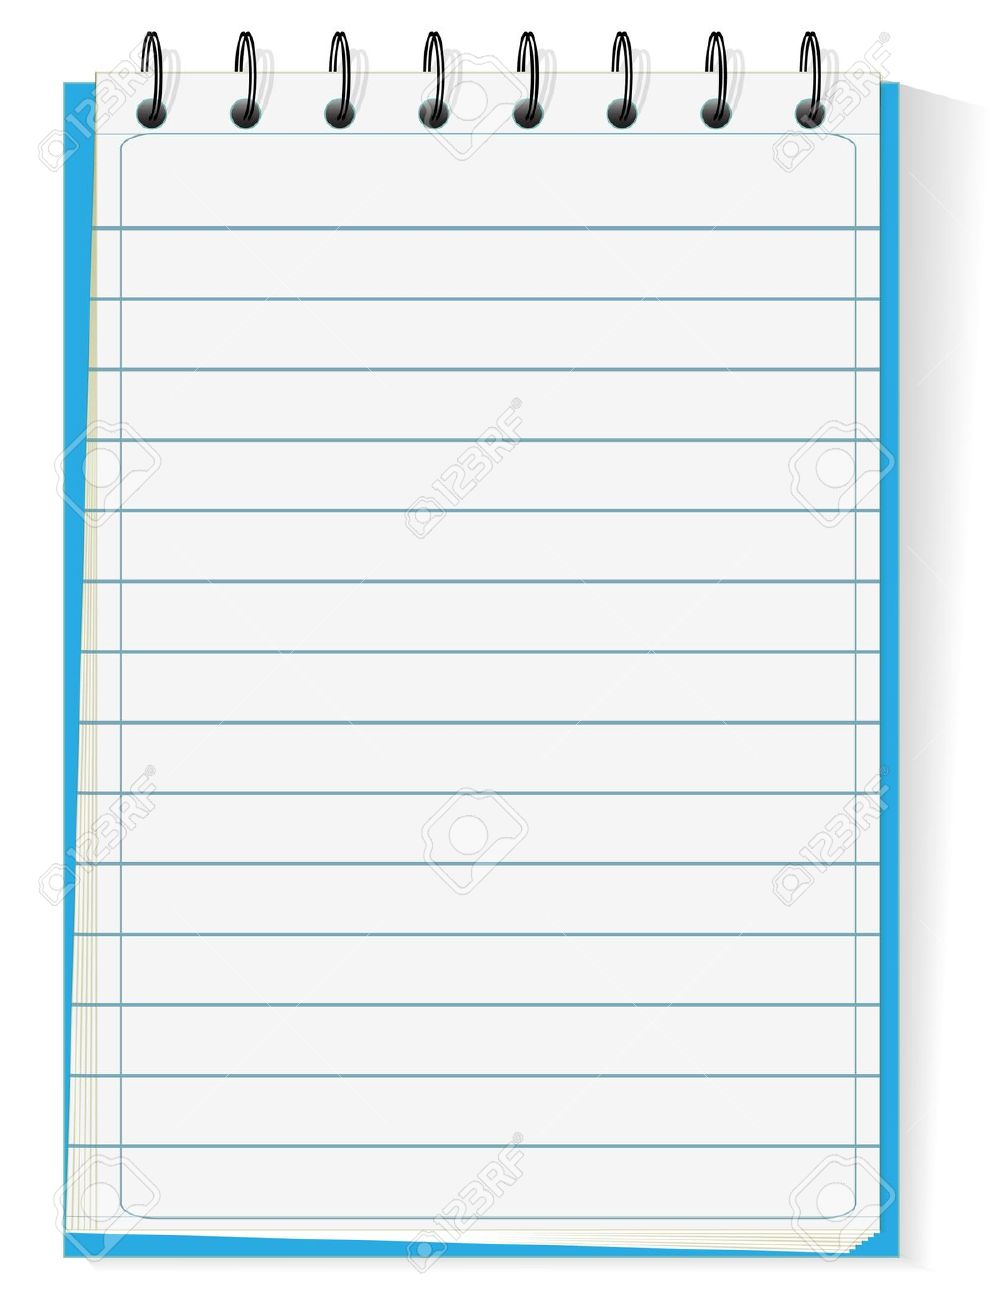 Spiral Notepad Isolated On White Royalty Free Cliparts, Vectors.